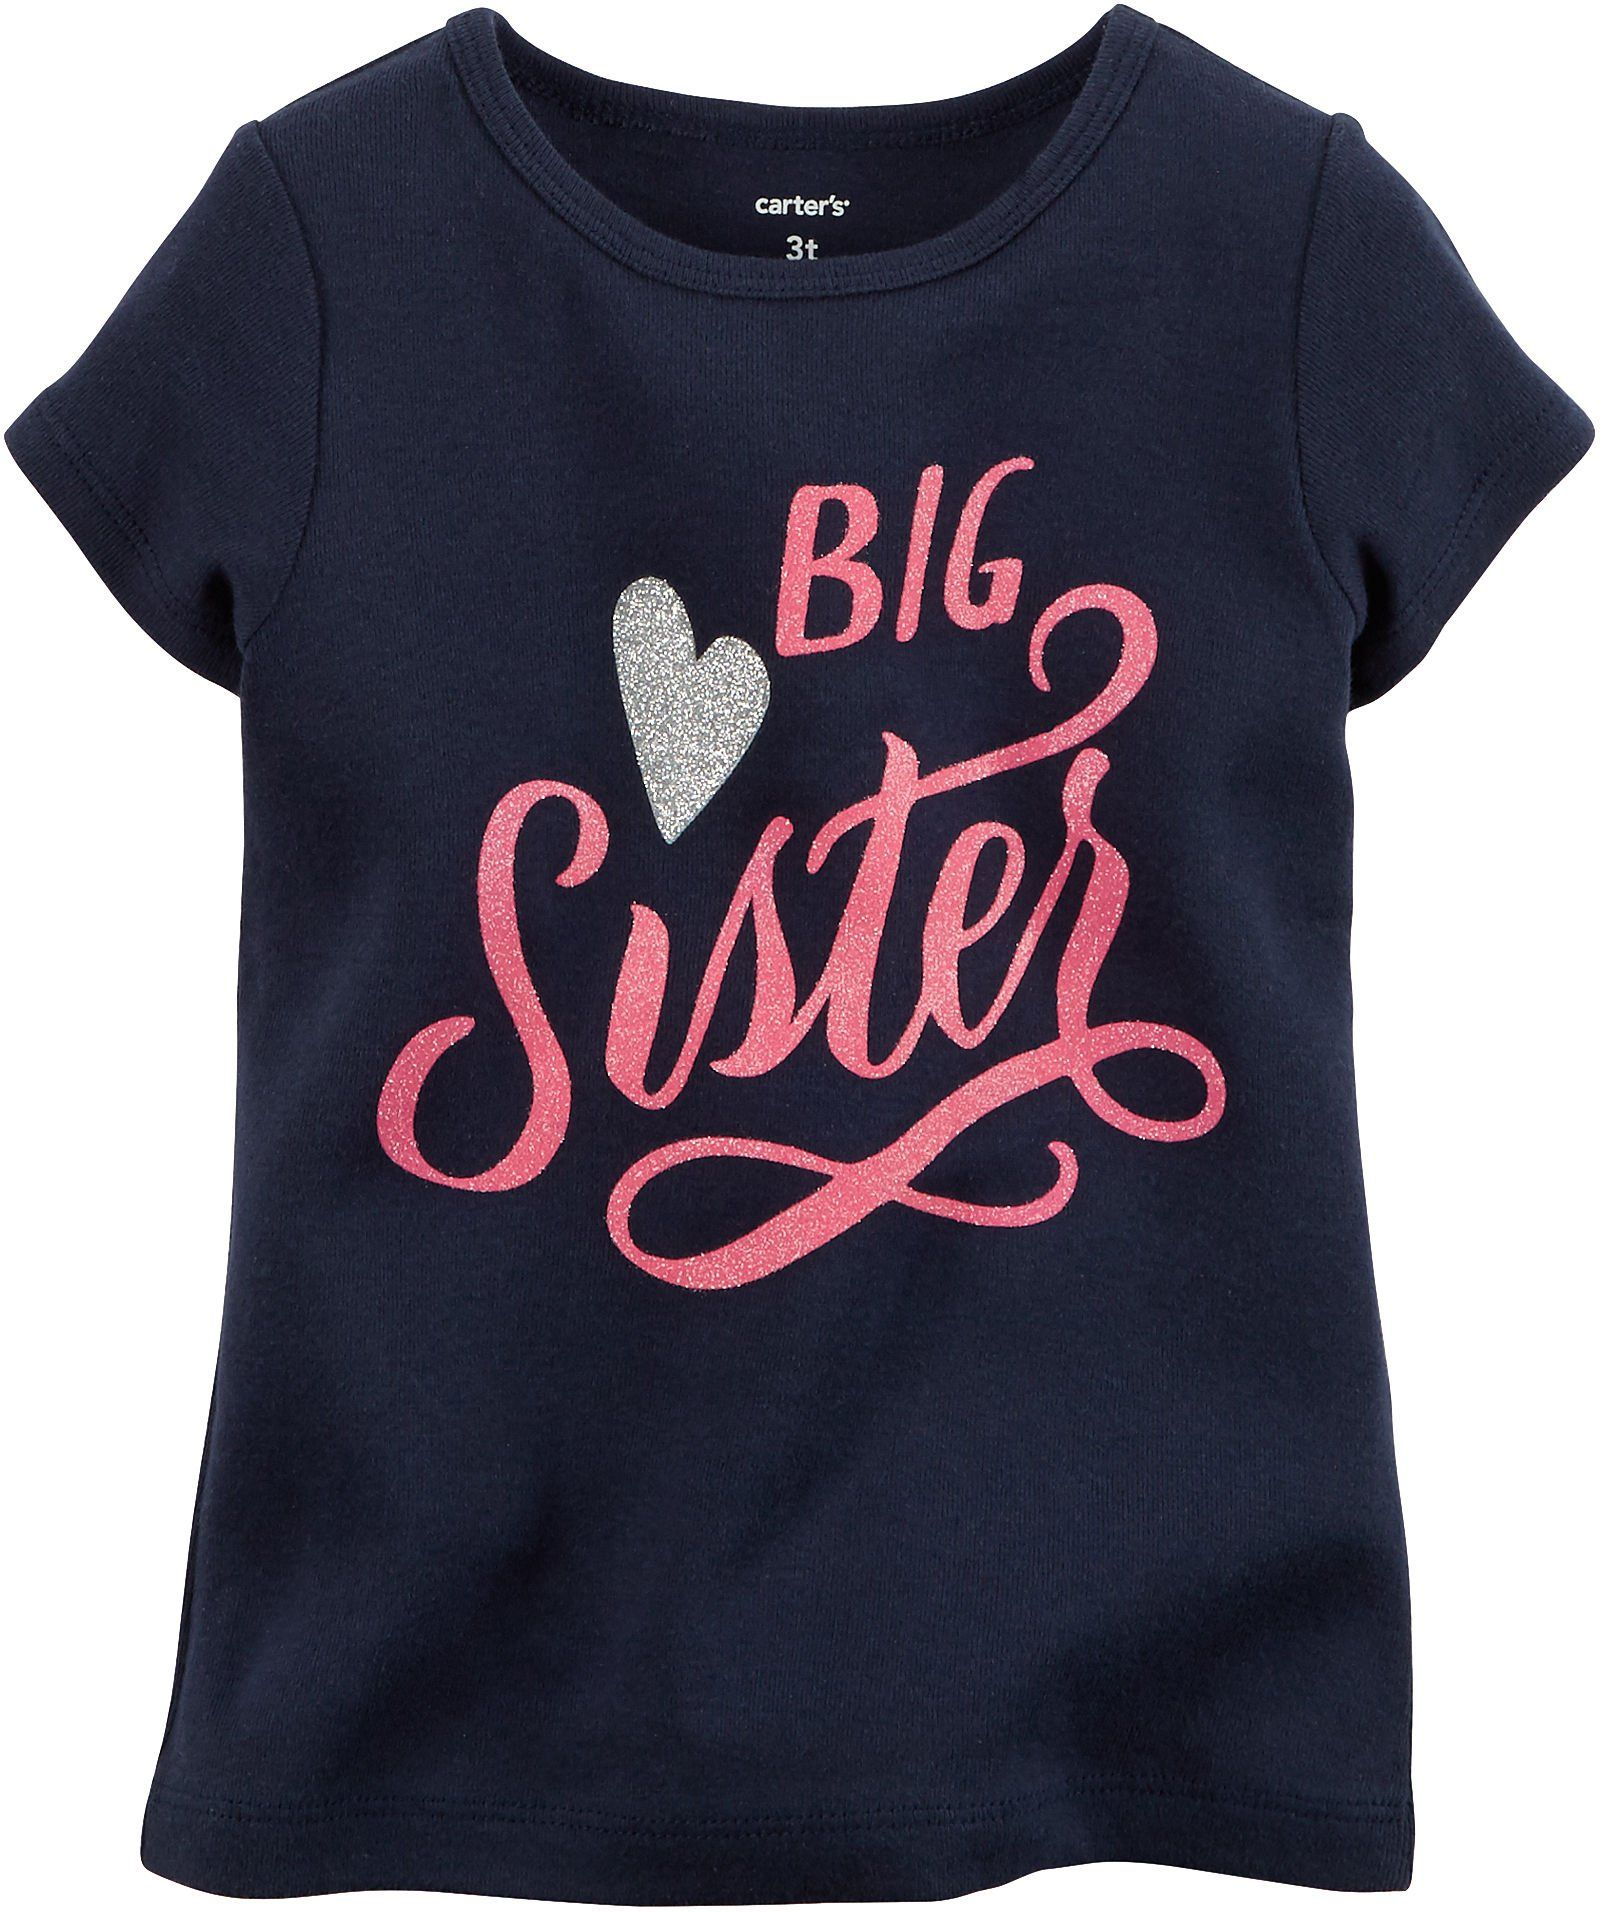 a3d175a6c975 Carters Little Girls Big Sister T-Shirt 6 Blue | Shhh we are having ...